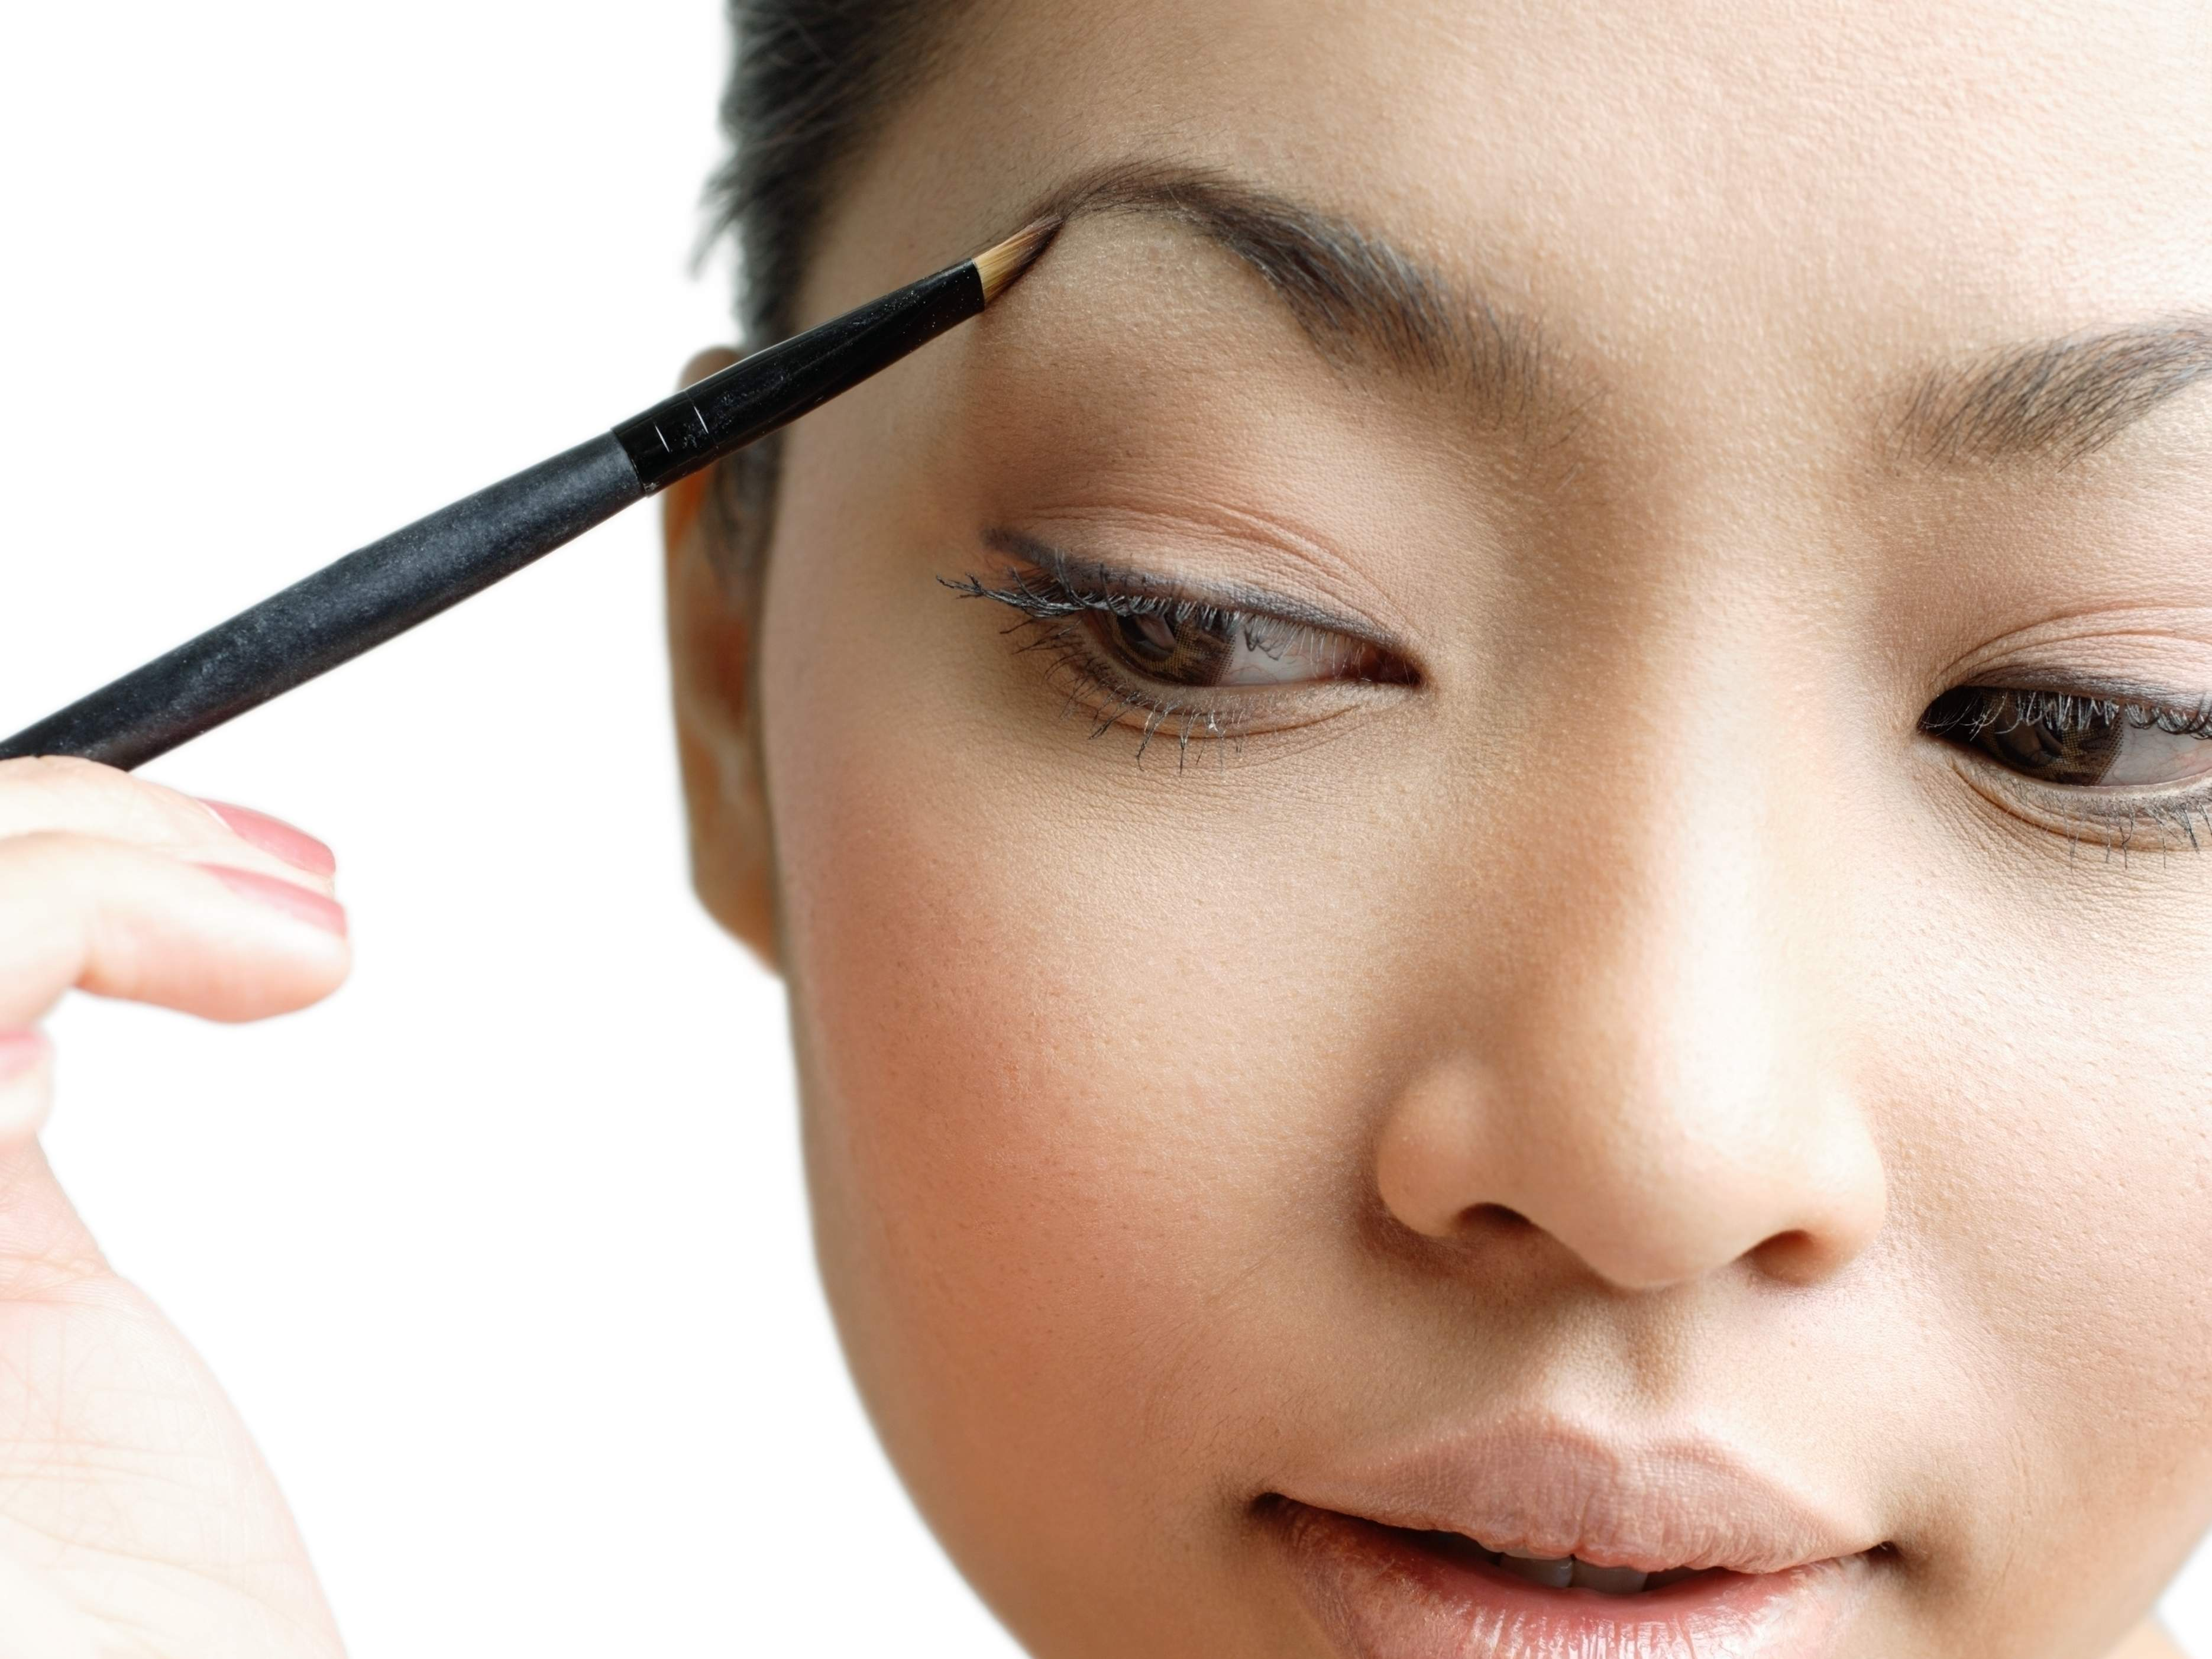 Microblading Eyebrows: Is it Safe? - Health